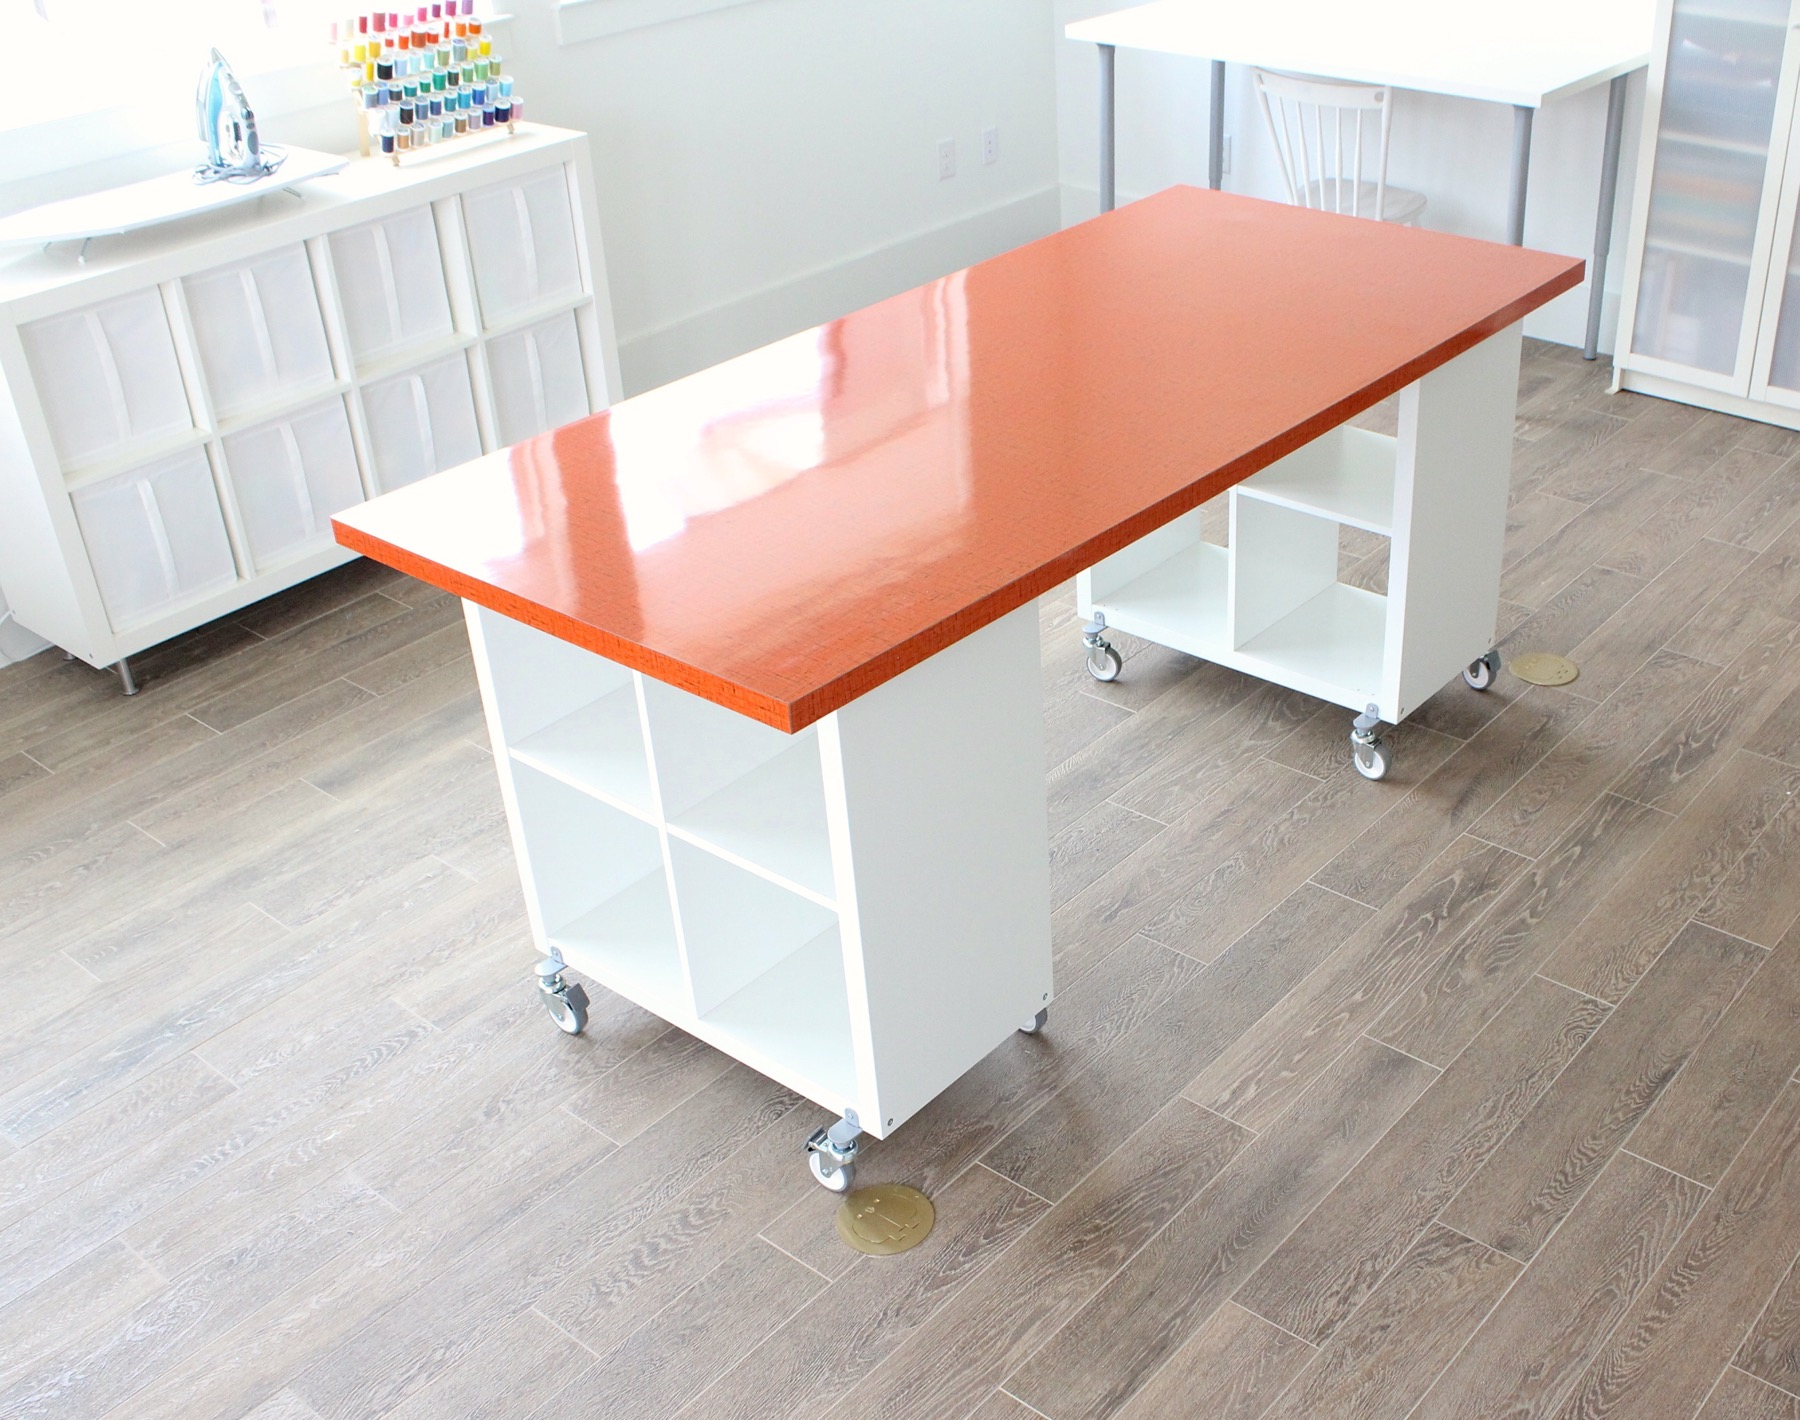 Building a new home the formica craft table made everyday for Building a craft room